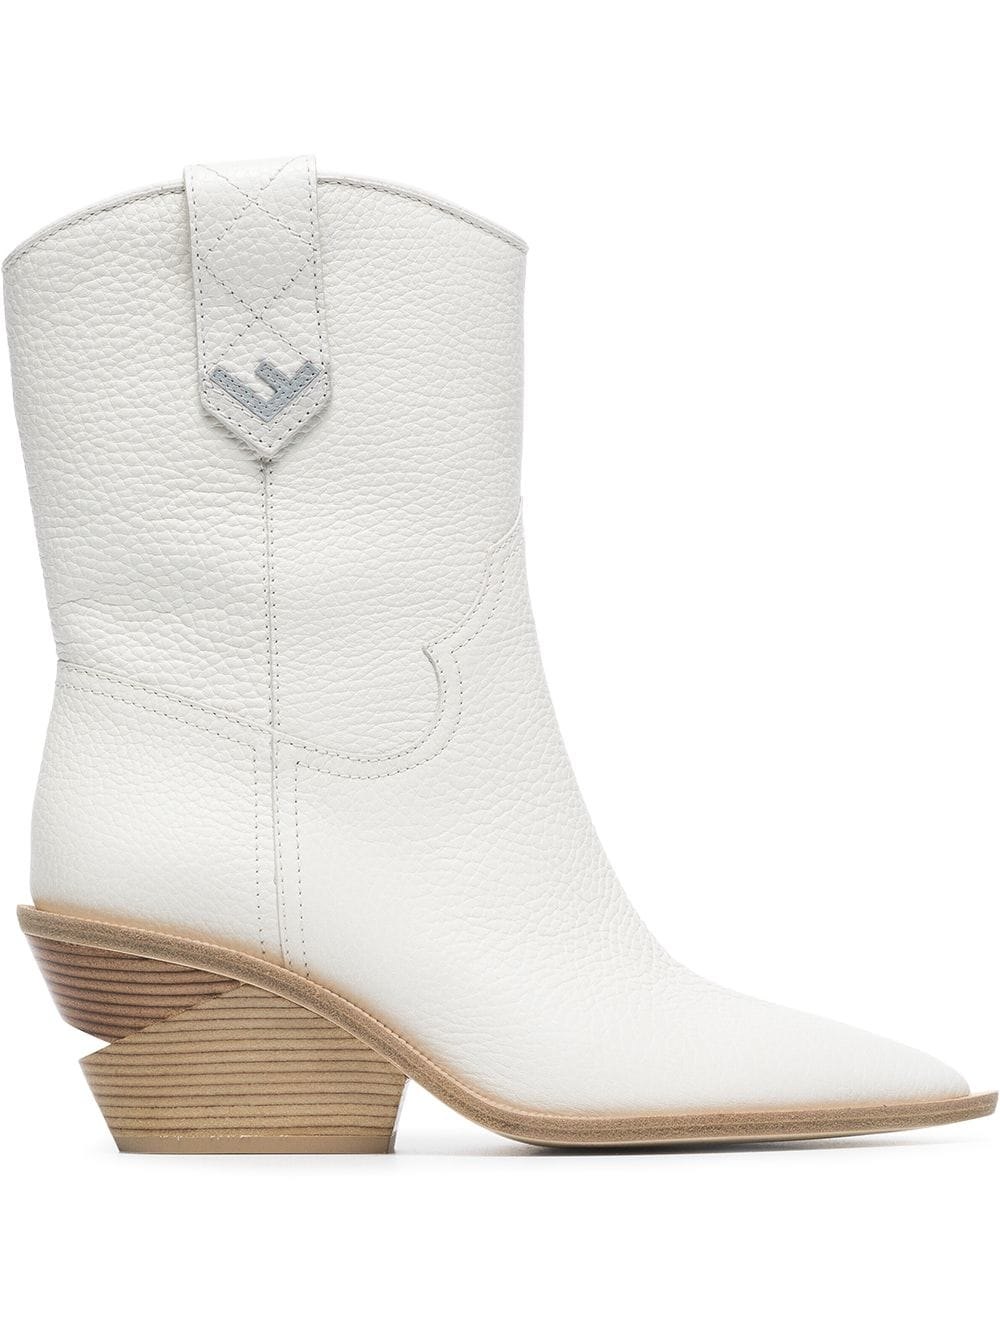 5a55e1bb96 Fendi White Cutwalk 60 Leather Boots | Products in 2019 | Boots ...